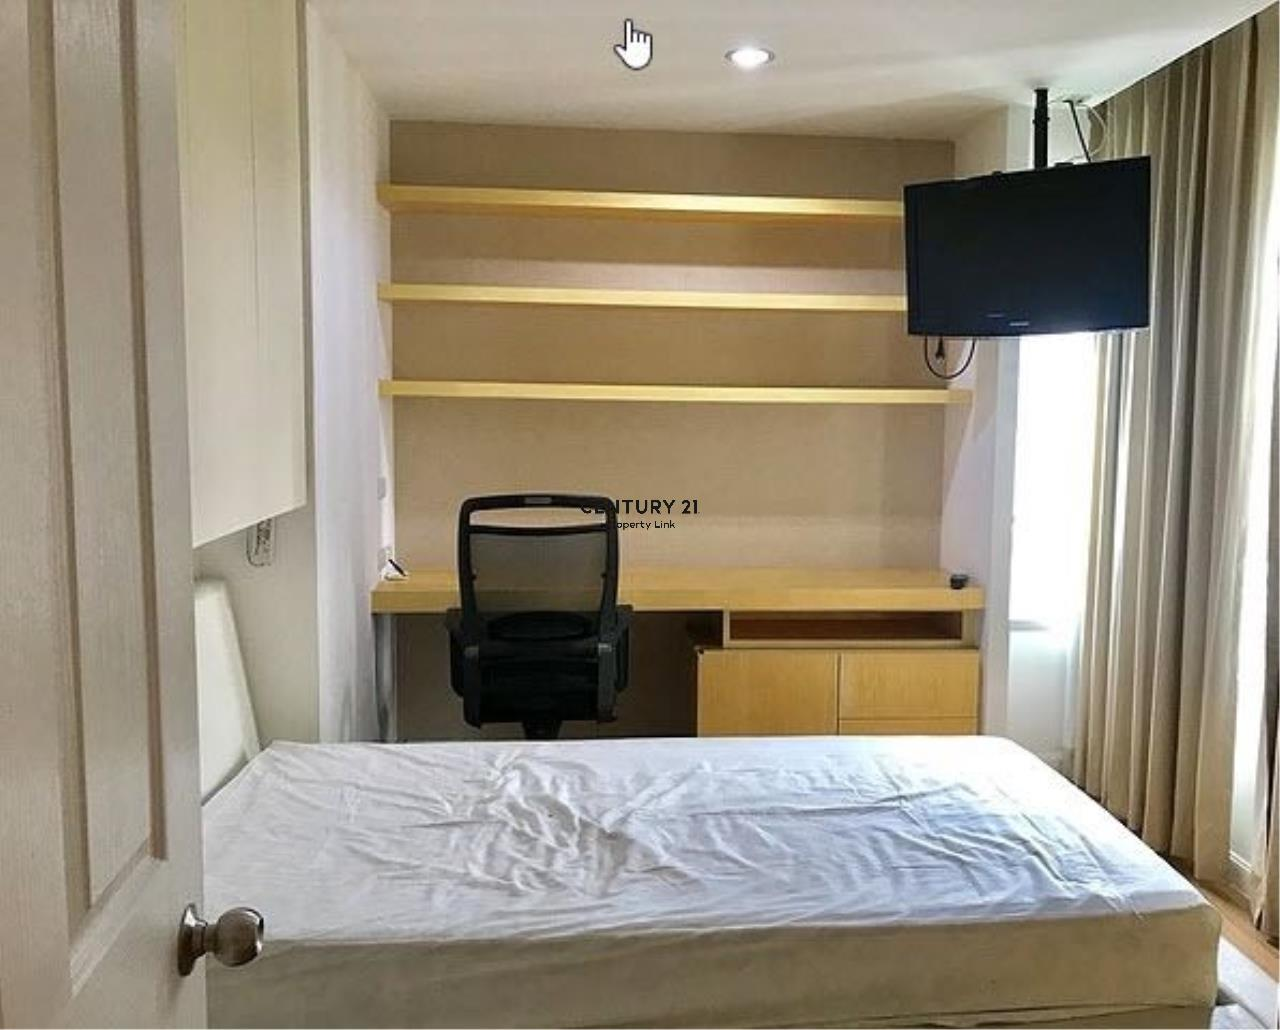 Century21 Property Link Agency's 39-CC-61568 Lumpini Place Rama IX-Ratchada Room For Rent Near MRT Rama 9 Phra Ram 9 road 2 Bedrooms Rental 33,000 THB./ month 3